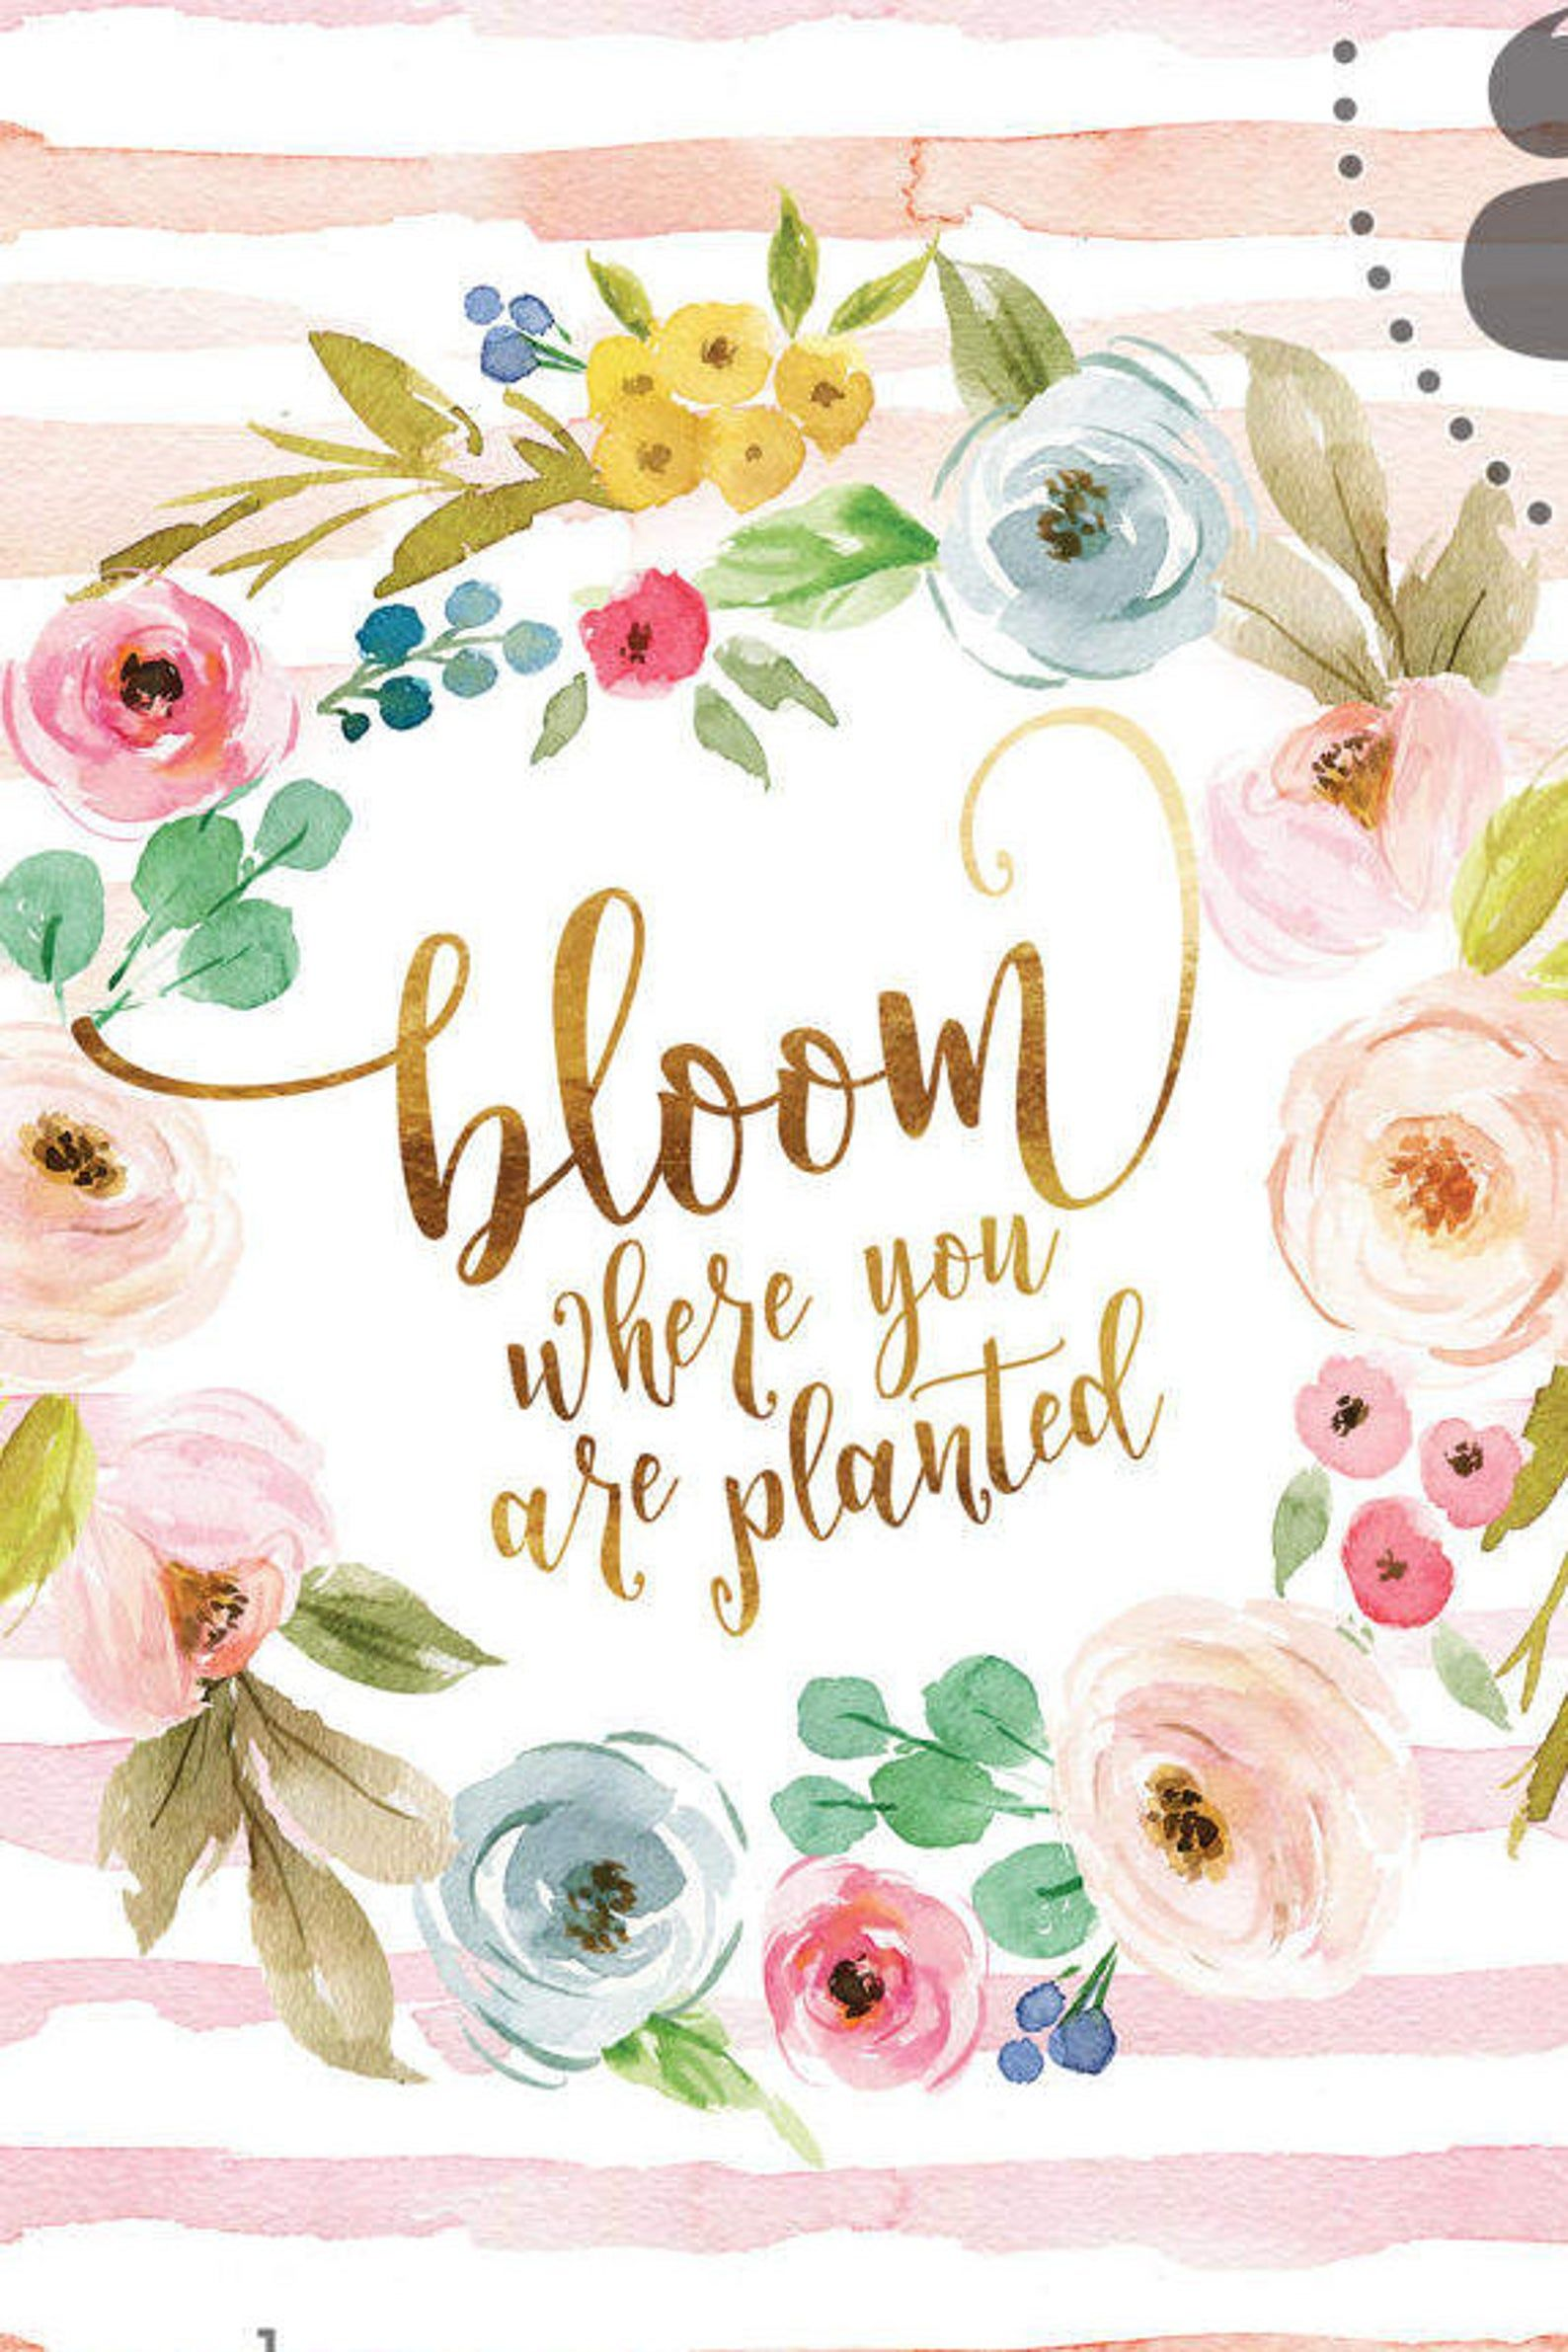 Bloom where you are planted in fresh watercolor wash with | Etsy